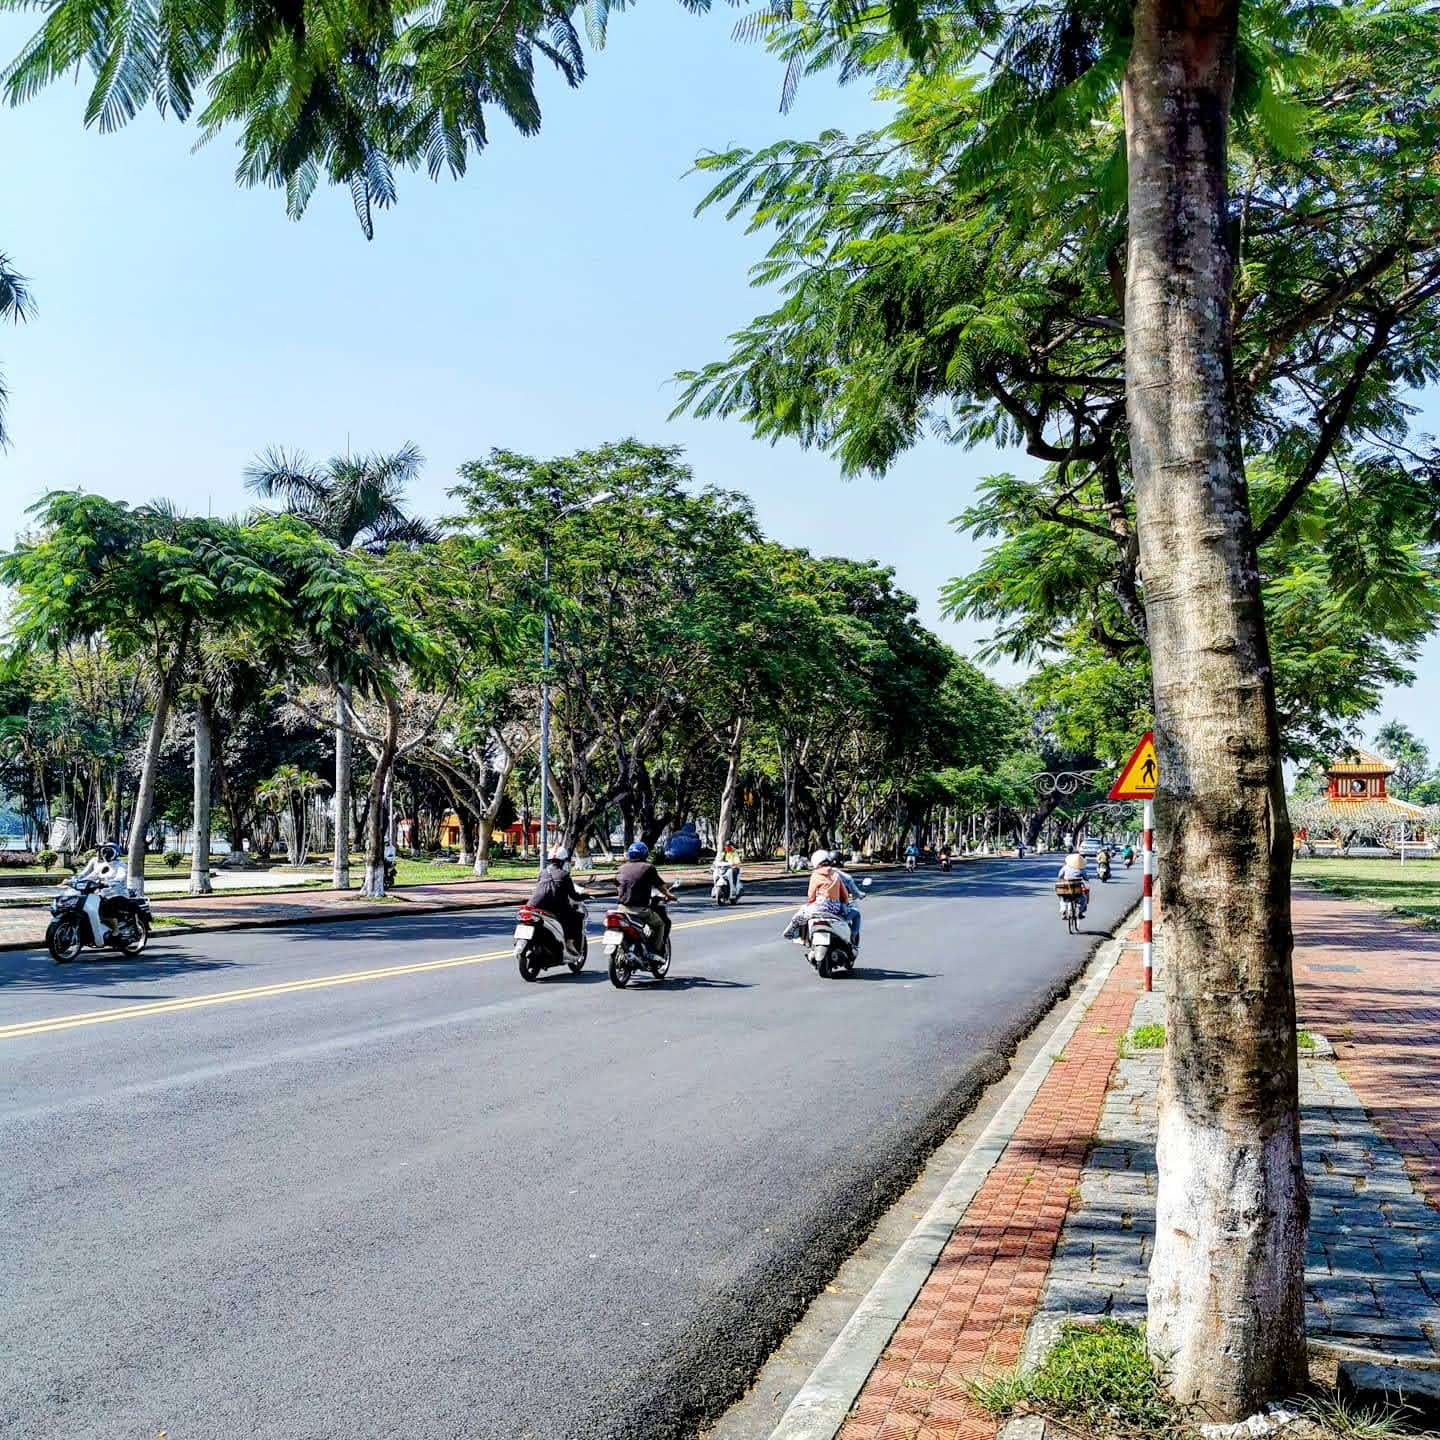 streets of hue